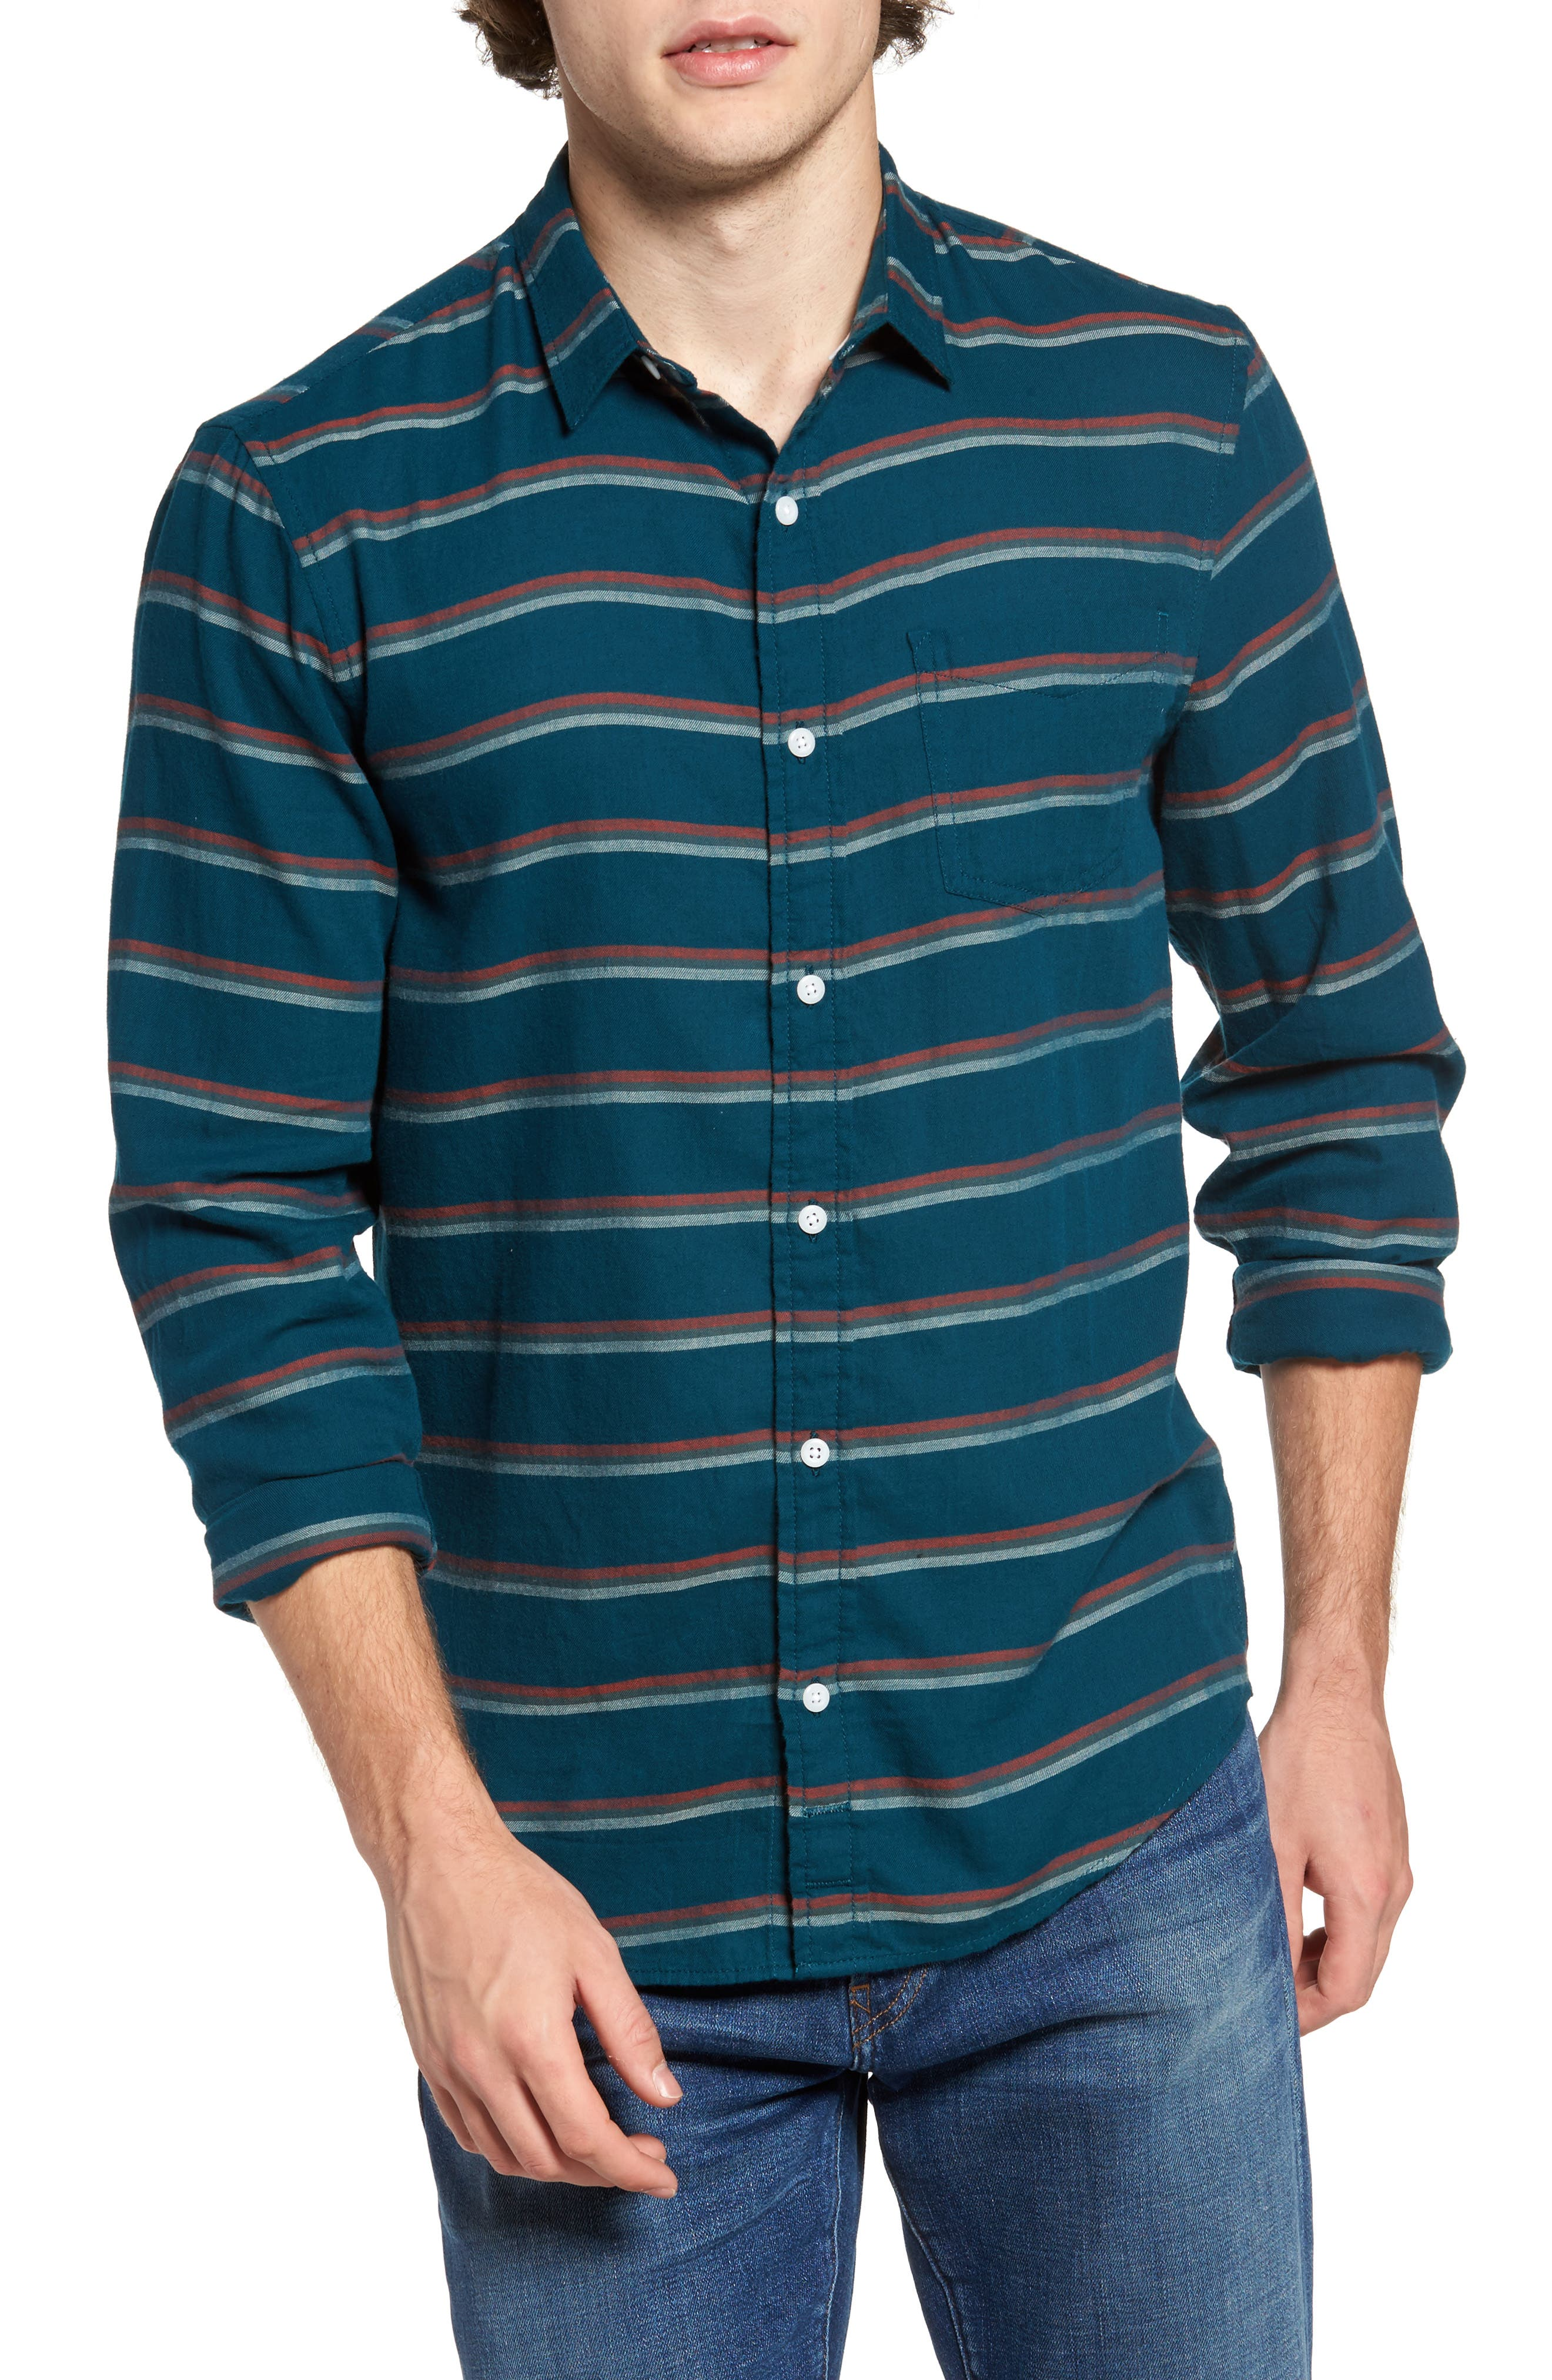 Alternate Image 1 Selected - 1901 Stripe Twill Shirt